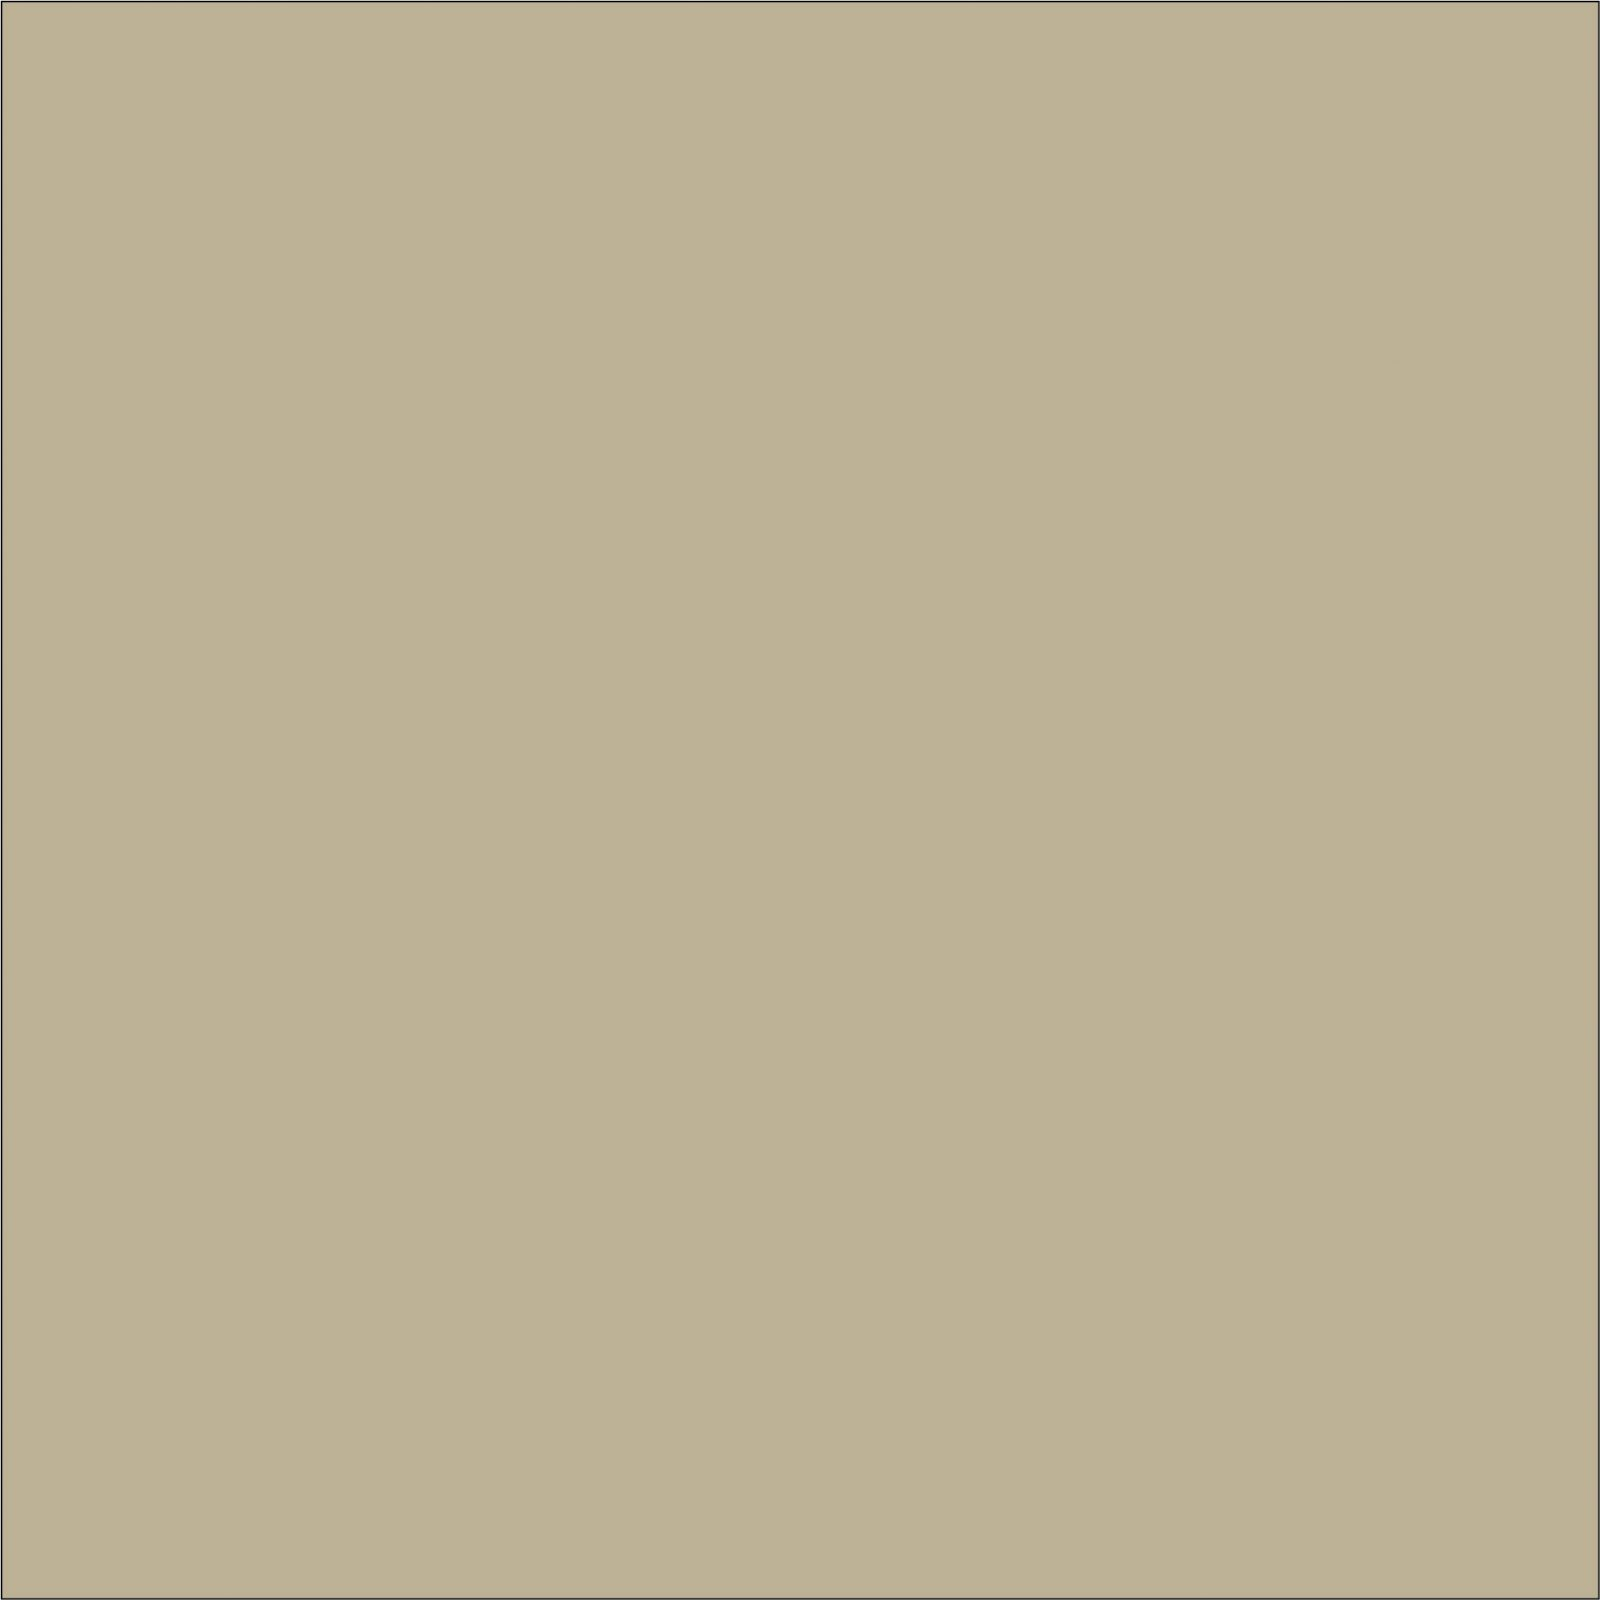 Colour swatch of Beige